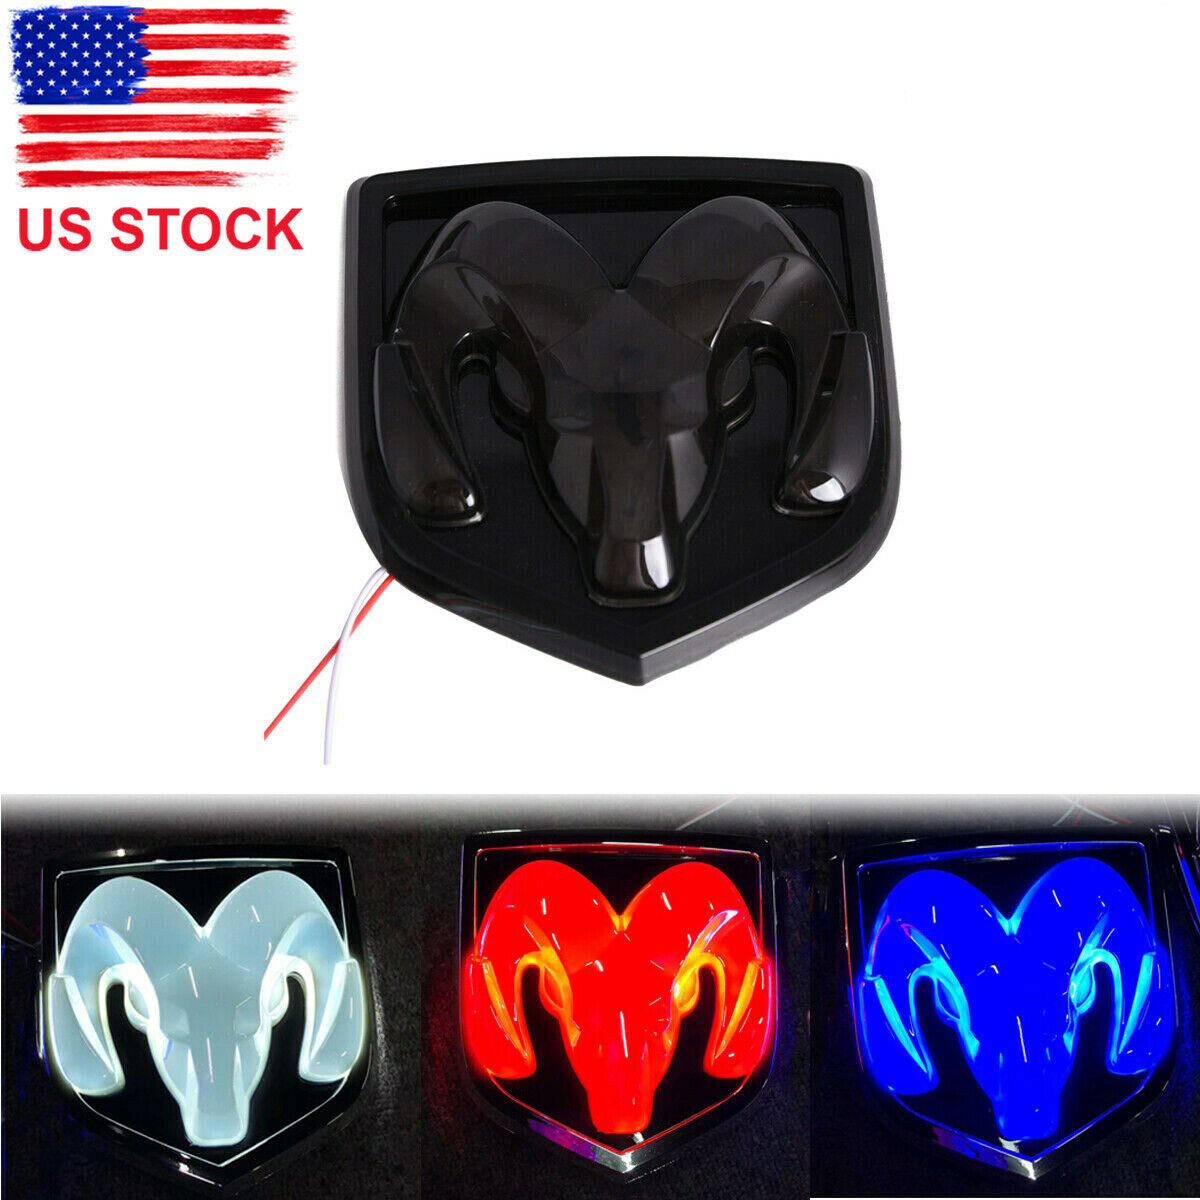 RAM Head Blue/Red/White LED Light Rear Tailgate Emblem for Ram 1500 2500 3500 image